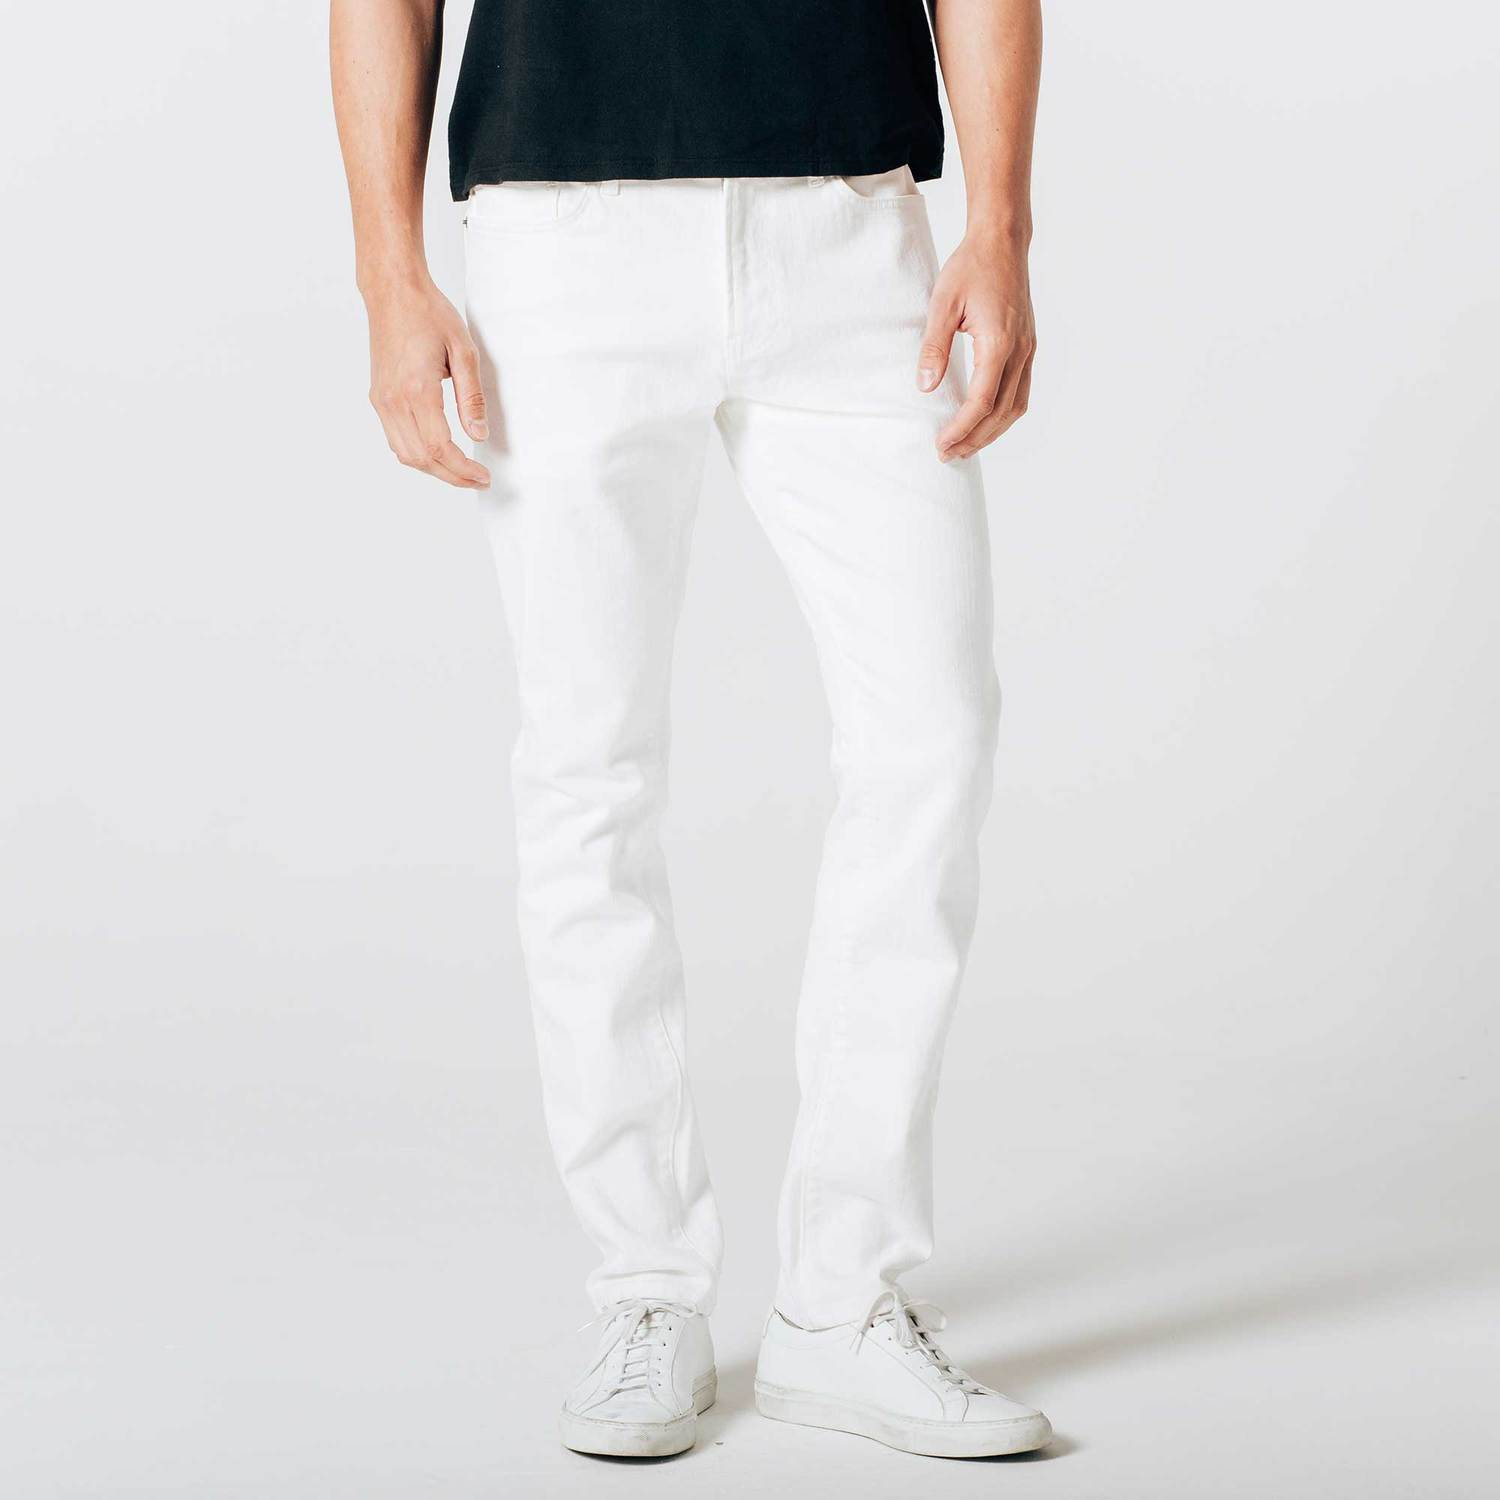 c23a009602 Mens Skinny Slim Jeans In White $85 | DSTLD